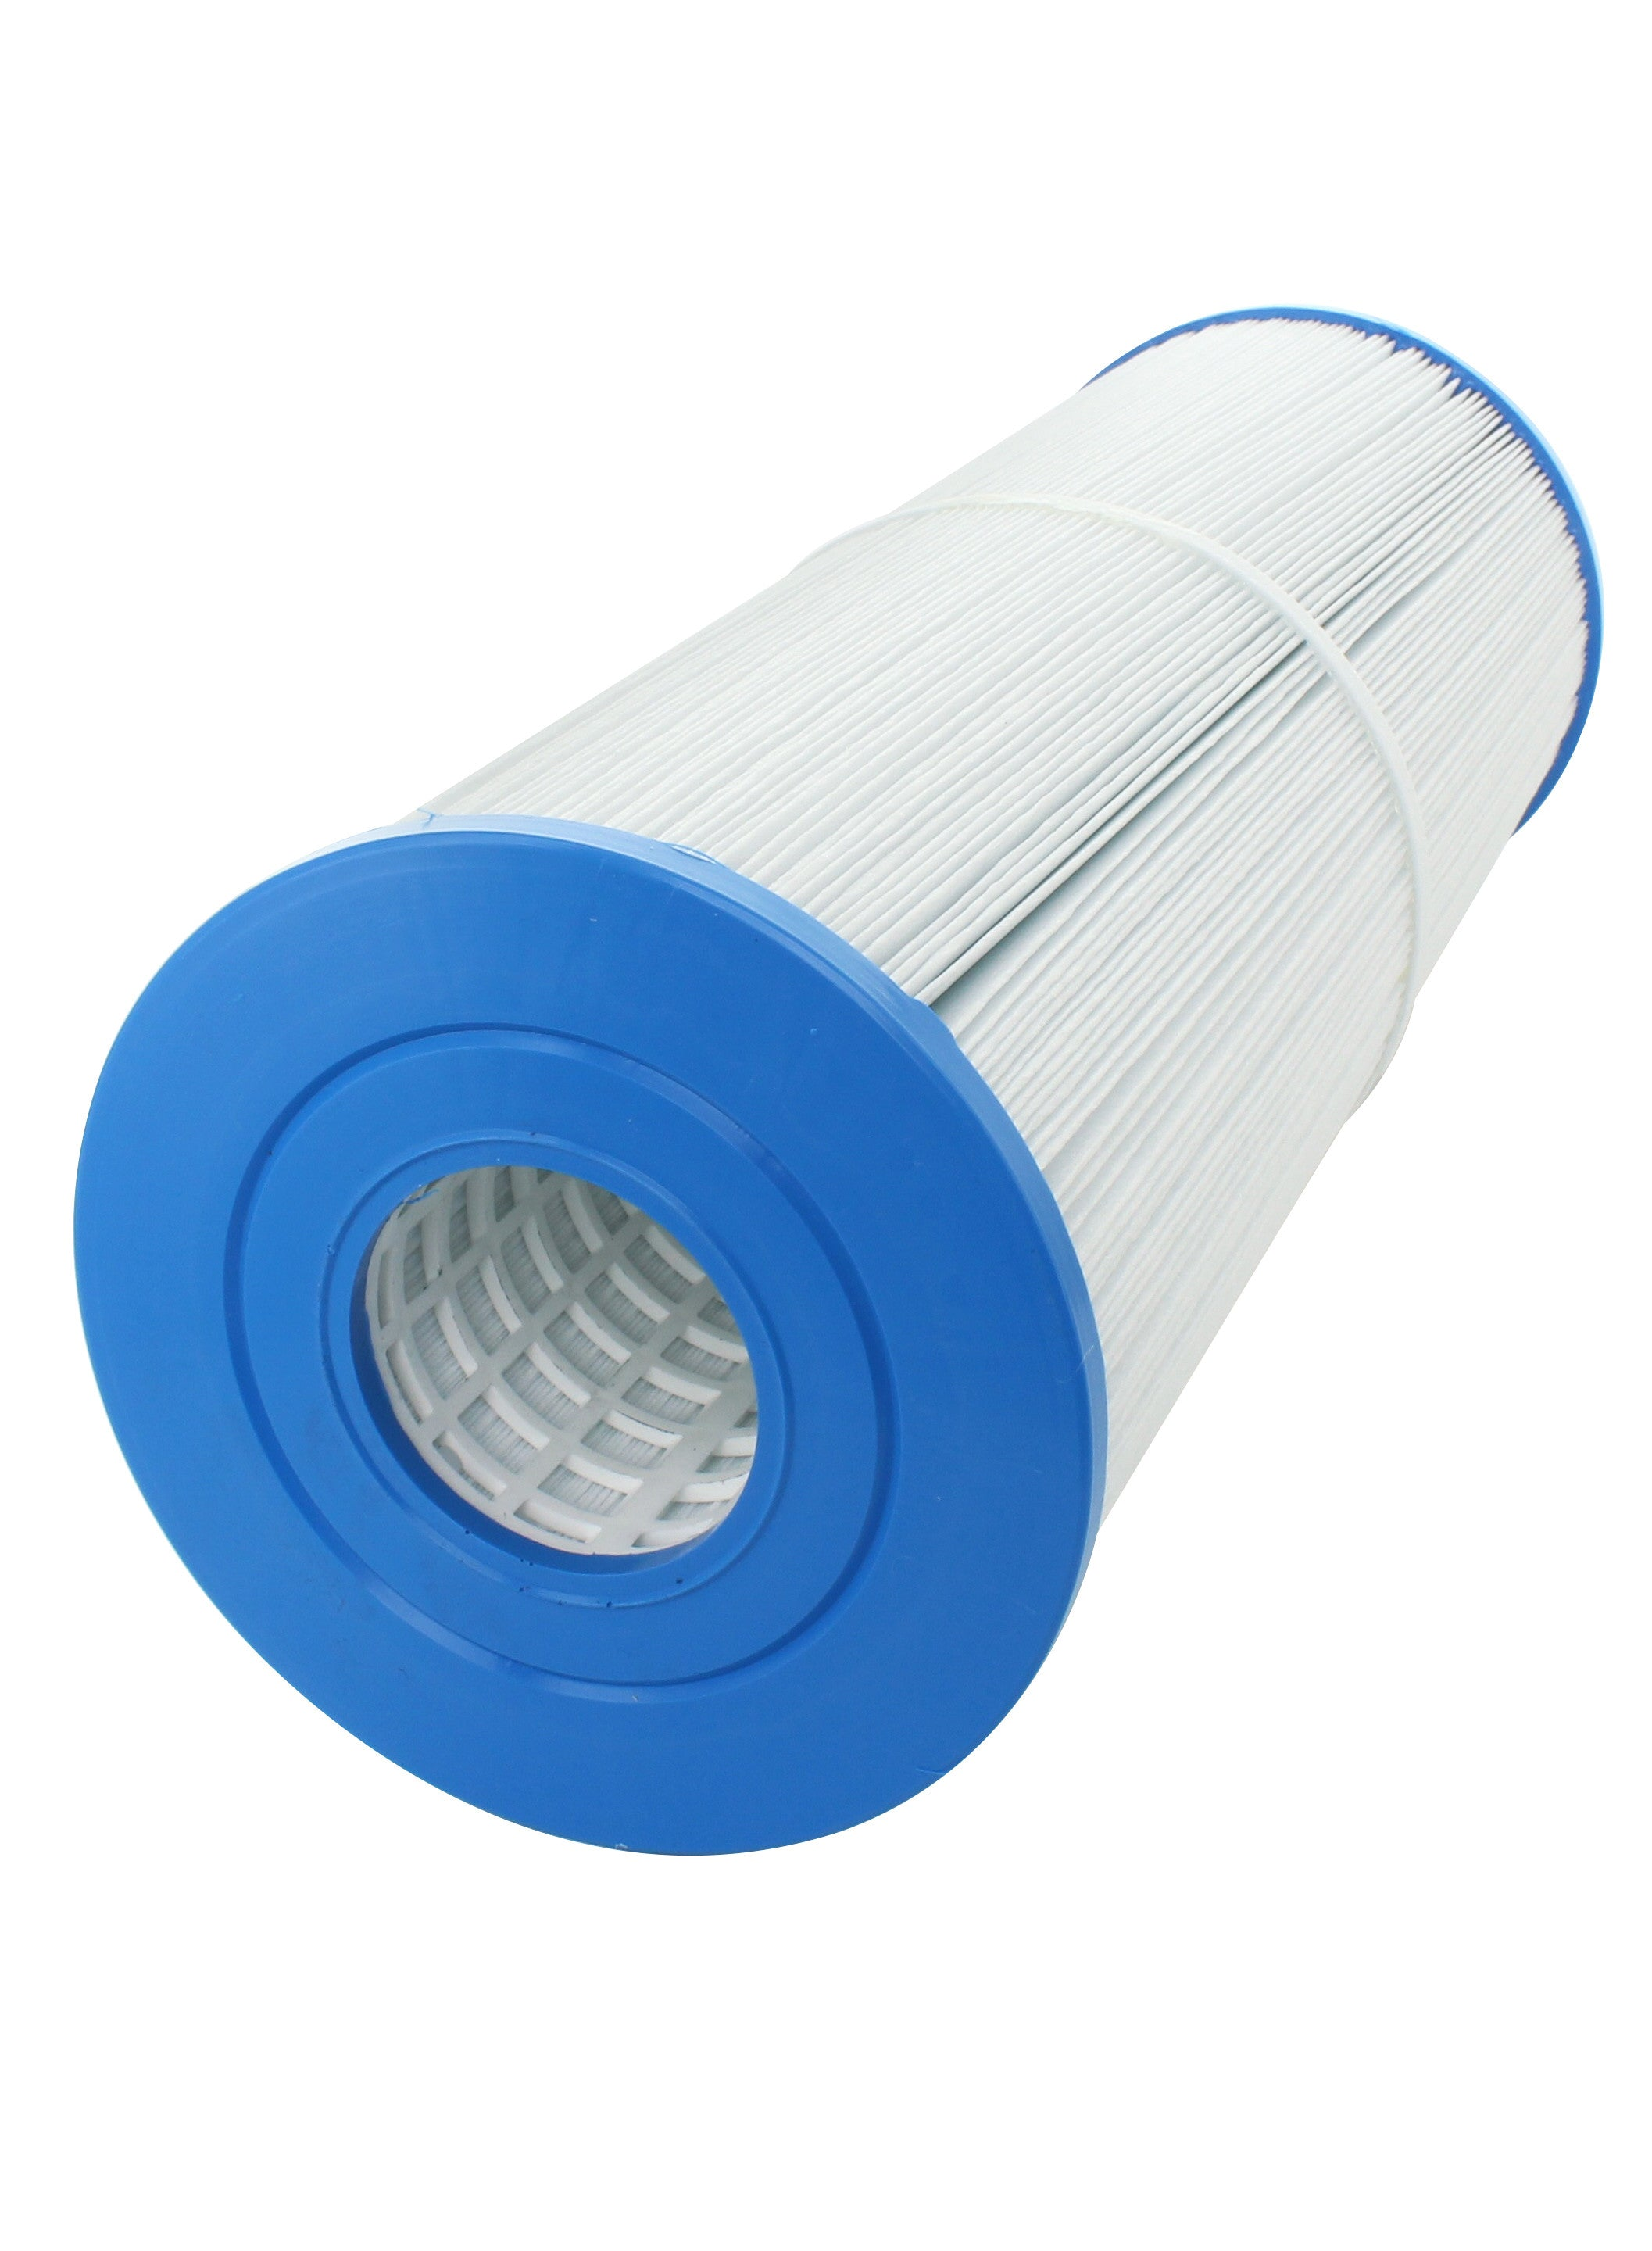 Replaces Unicel C-5374, Pleatco PLBS75 • Pool & Spa Filter Cartridge-Filter Cartridge-FilterDeal.com